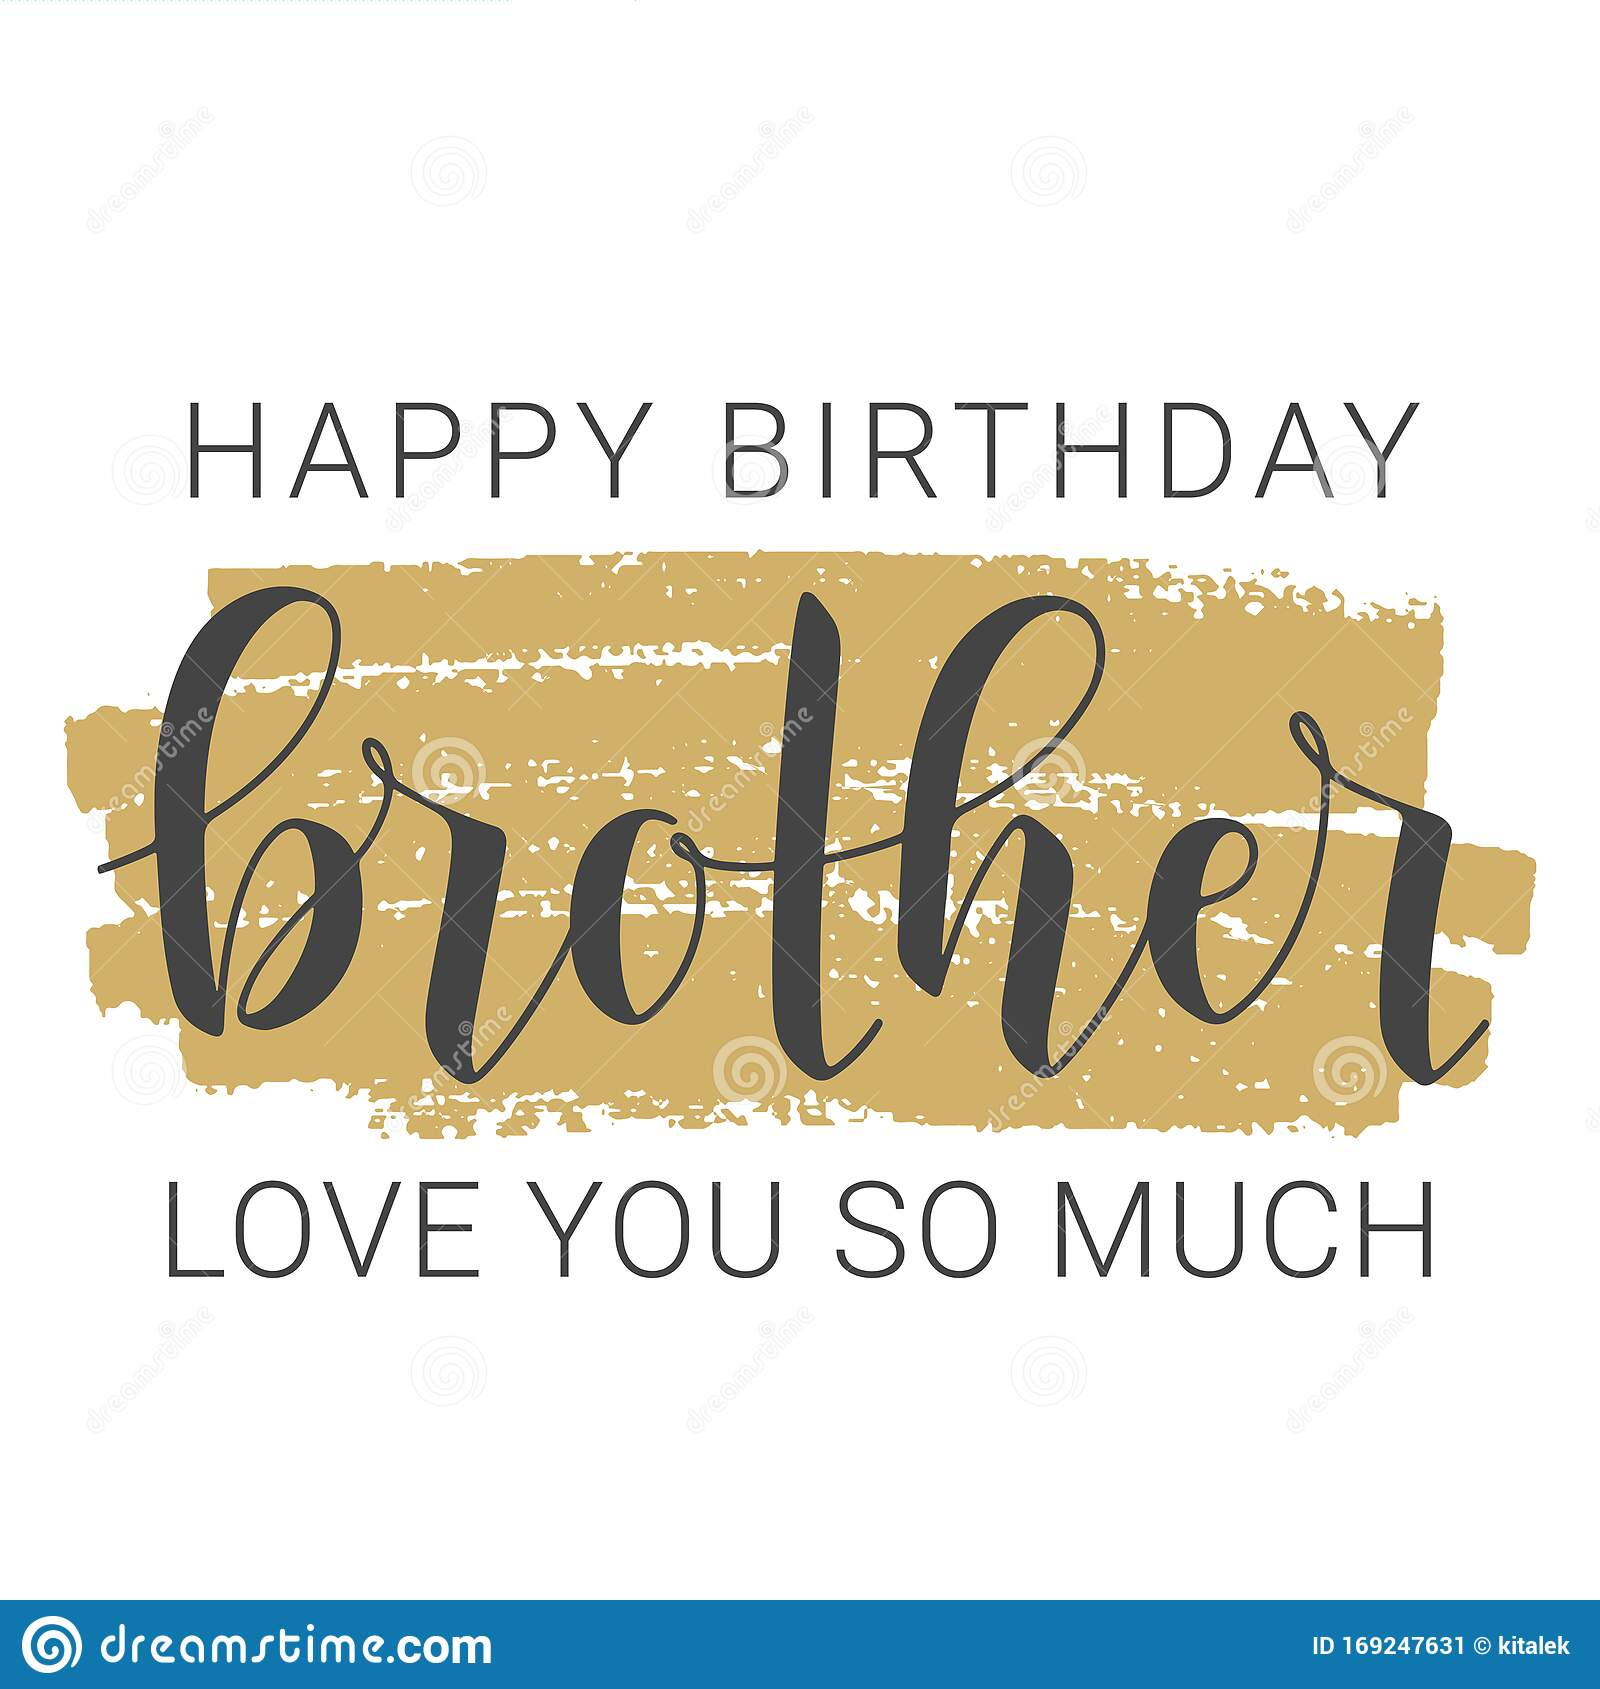 Happy Birthday Brother Stock Illustrations 947 Happy Birthday Brother Stock Illustrations Vectors Clipart Dreamstime